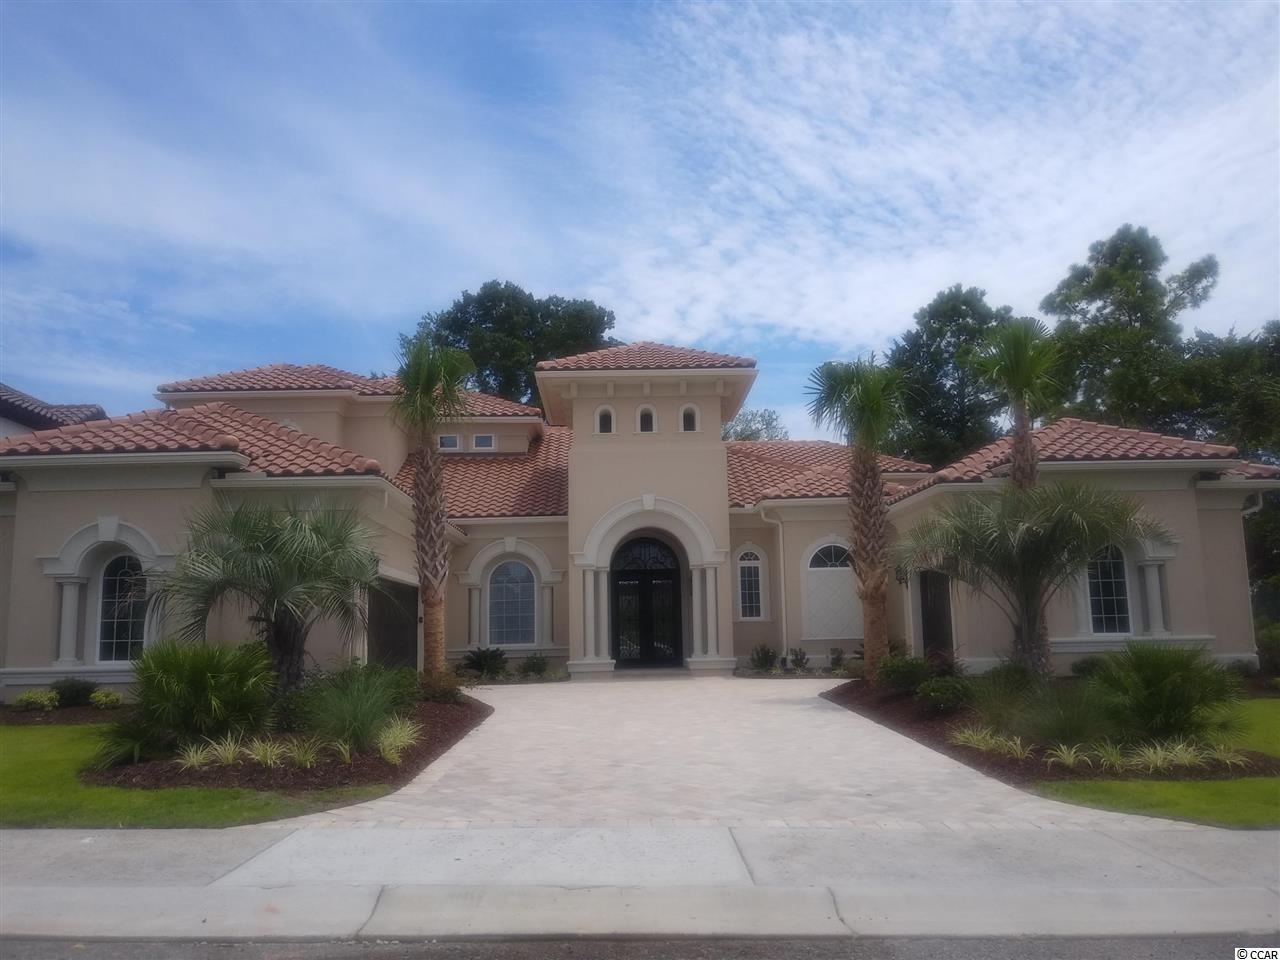 This custom home is being built in Villa Venezia and is under contract.  Please feel free to view the home while under construction or visit our Villa Venezia Model Home next door.  Our Venezia Model Home is open 7 days a week.  This particular homesite will overlook the Intracoastal Waterway while located on the Resort Golf Course in Grande Dunes.  Other similiar homesites are available.